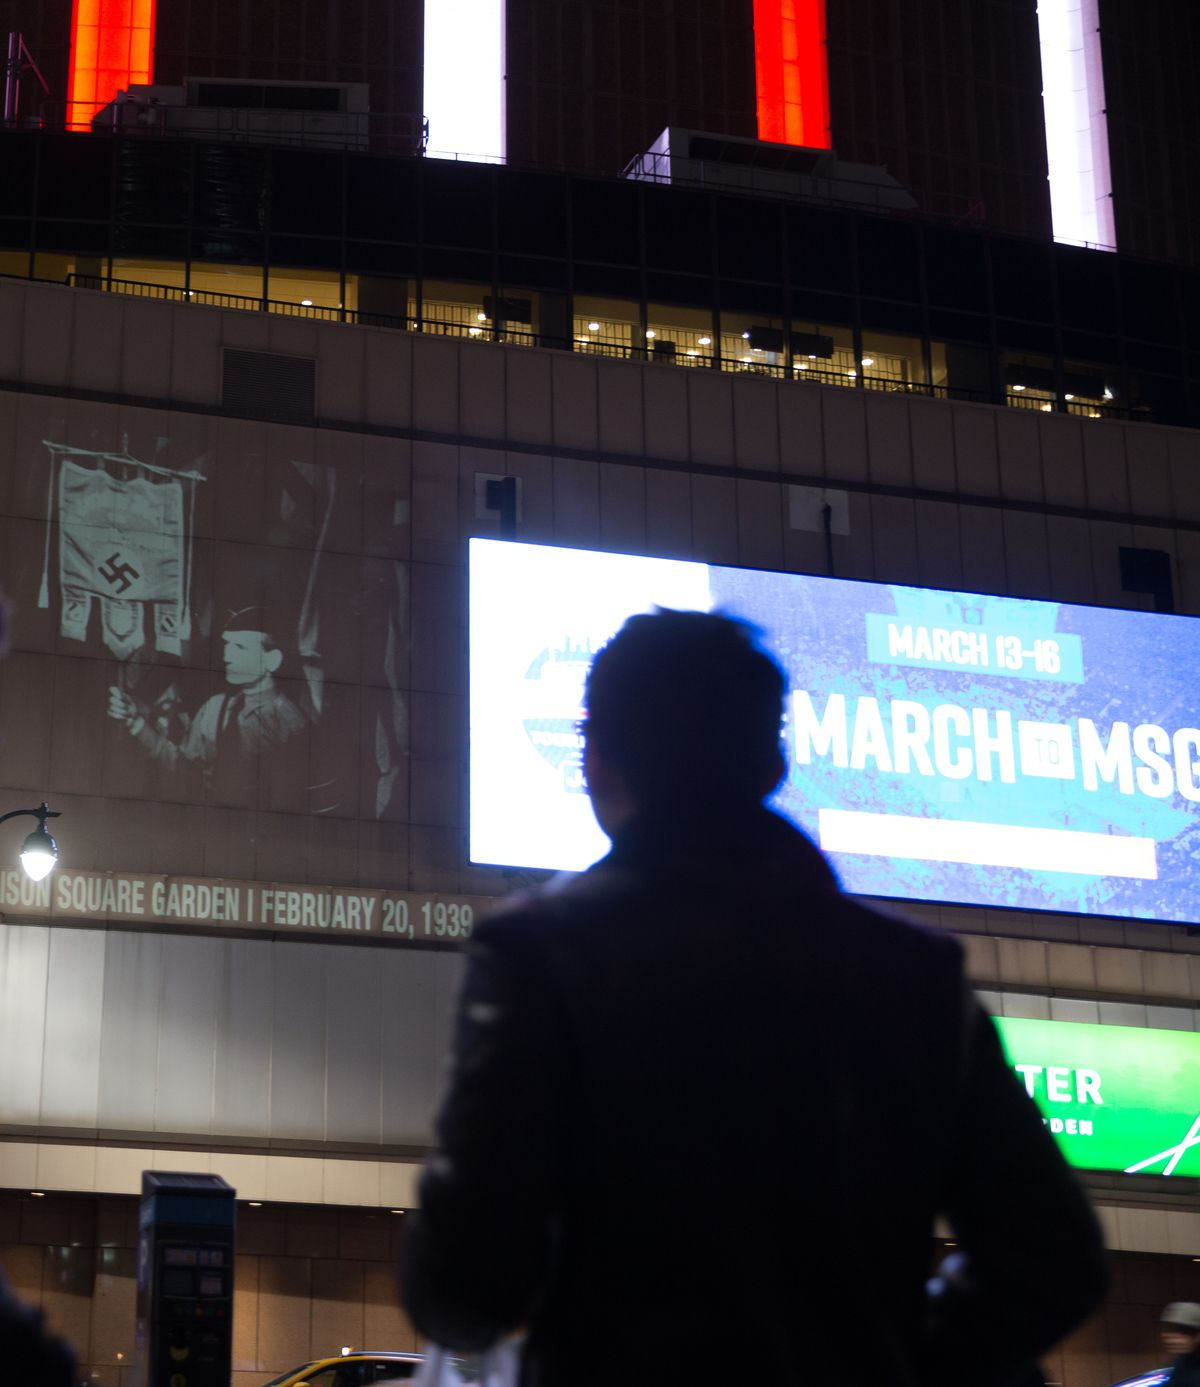 A Night at the Garden is projected onto the side of Madison Square Garden on February 18, two days before the 80th anniversary of the rally.